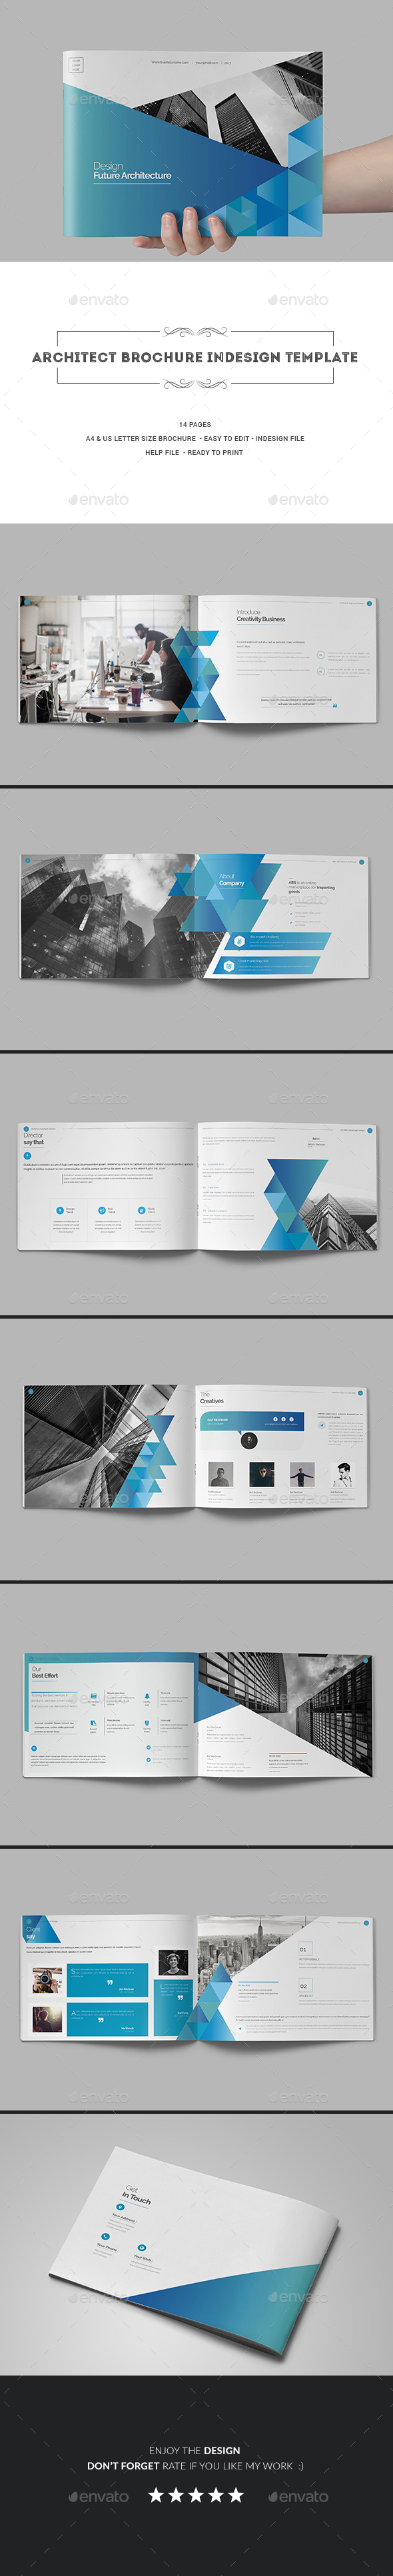 Architect Brochure Indesign Template - Corporate Brochures